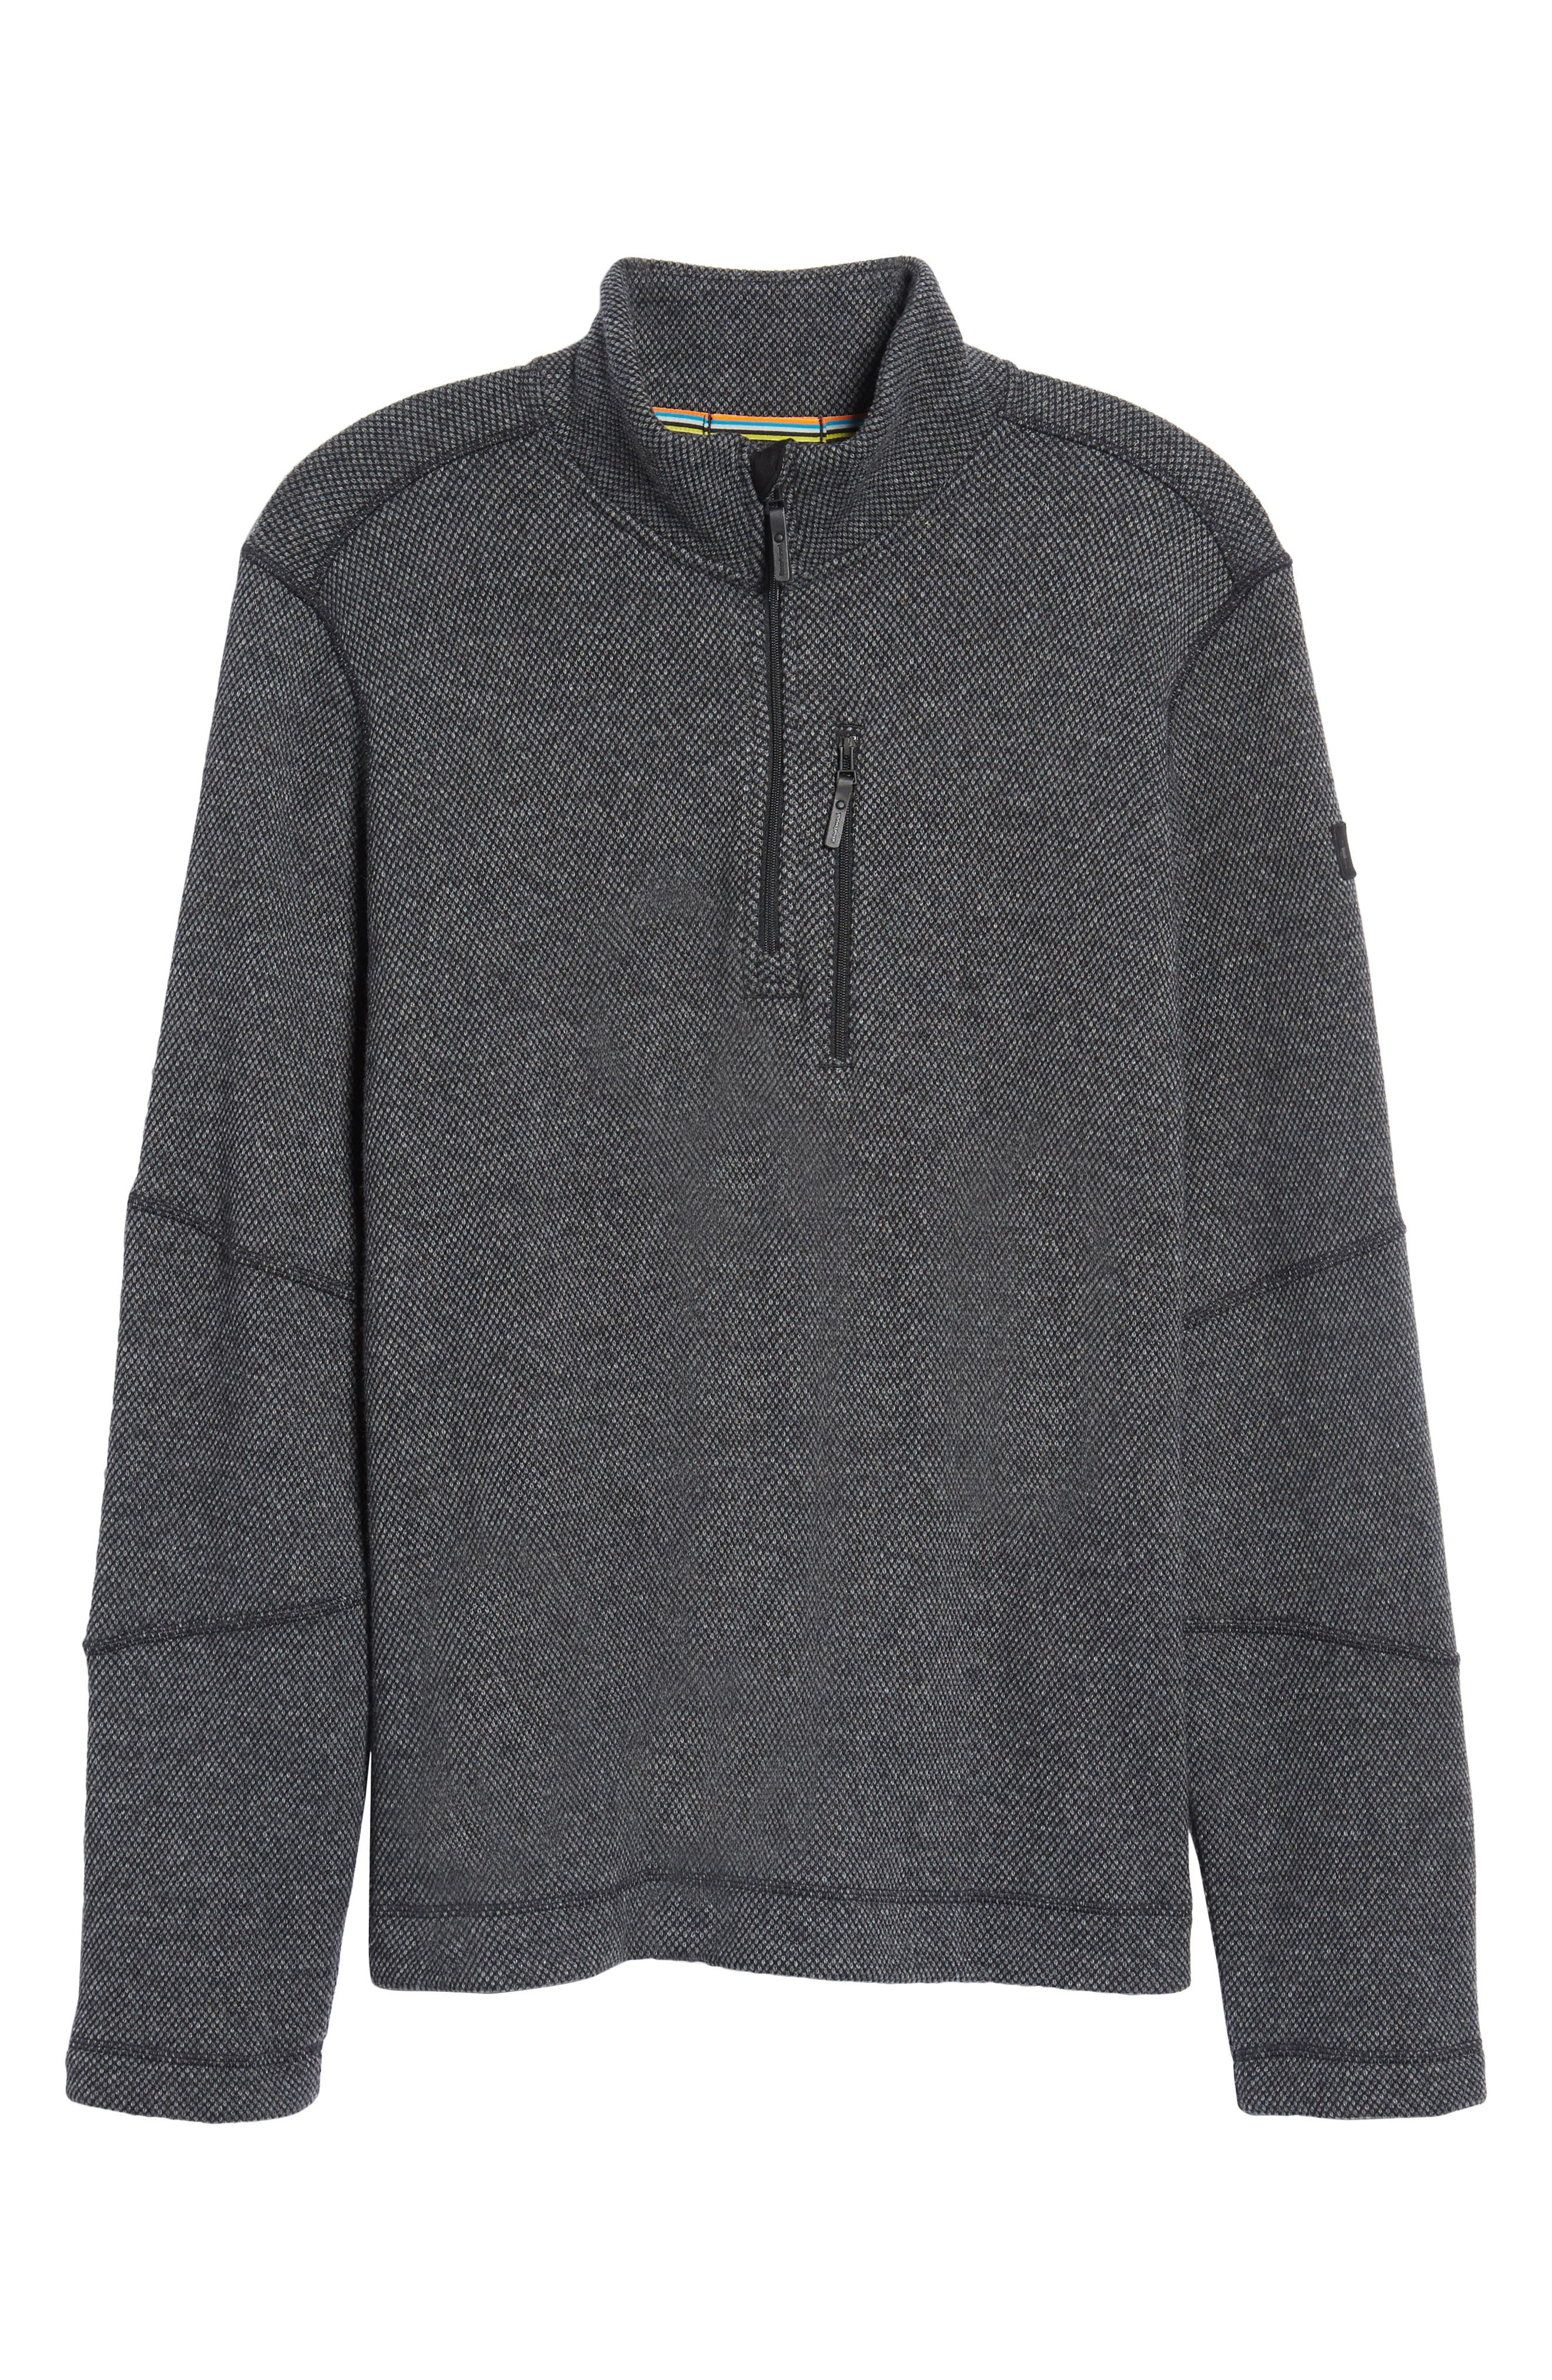 Heritage Trail Fleece Pullover,                             Alternate thumbnail 6, color,                             Charcoal Heather